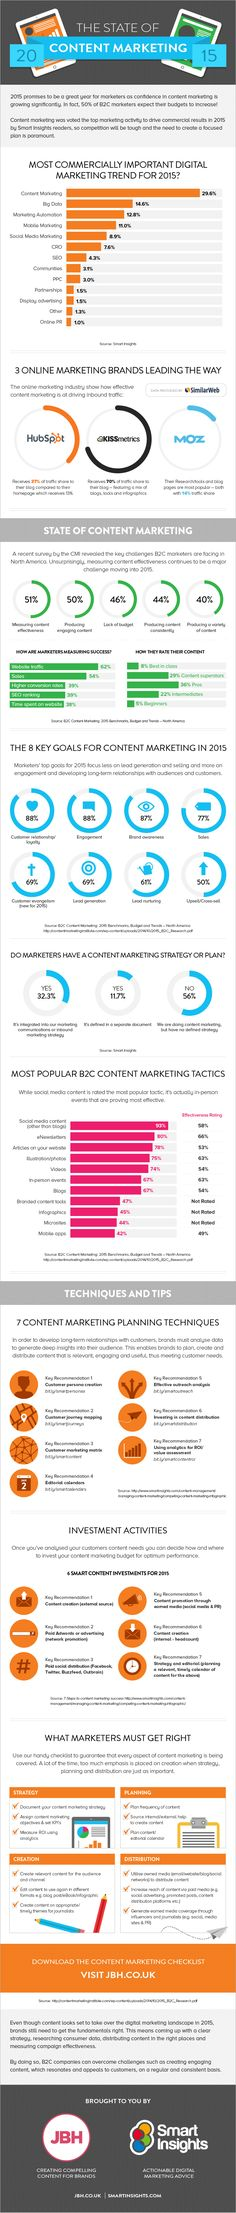 8 Ways #ContentMarketing Can Help Build Your Business #yvlcm